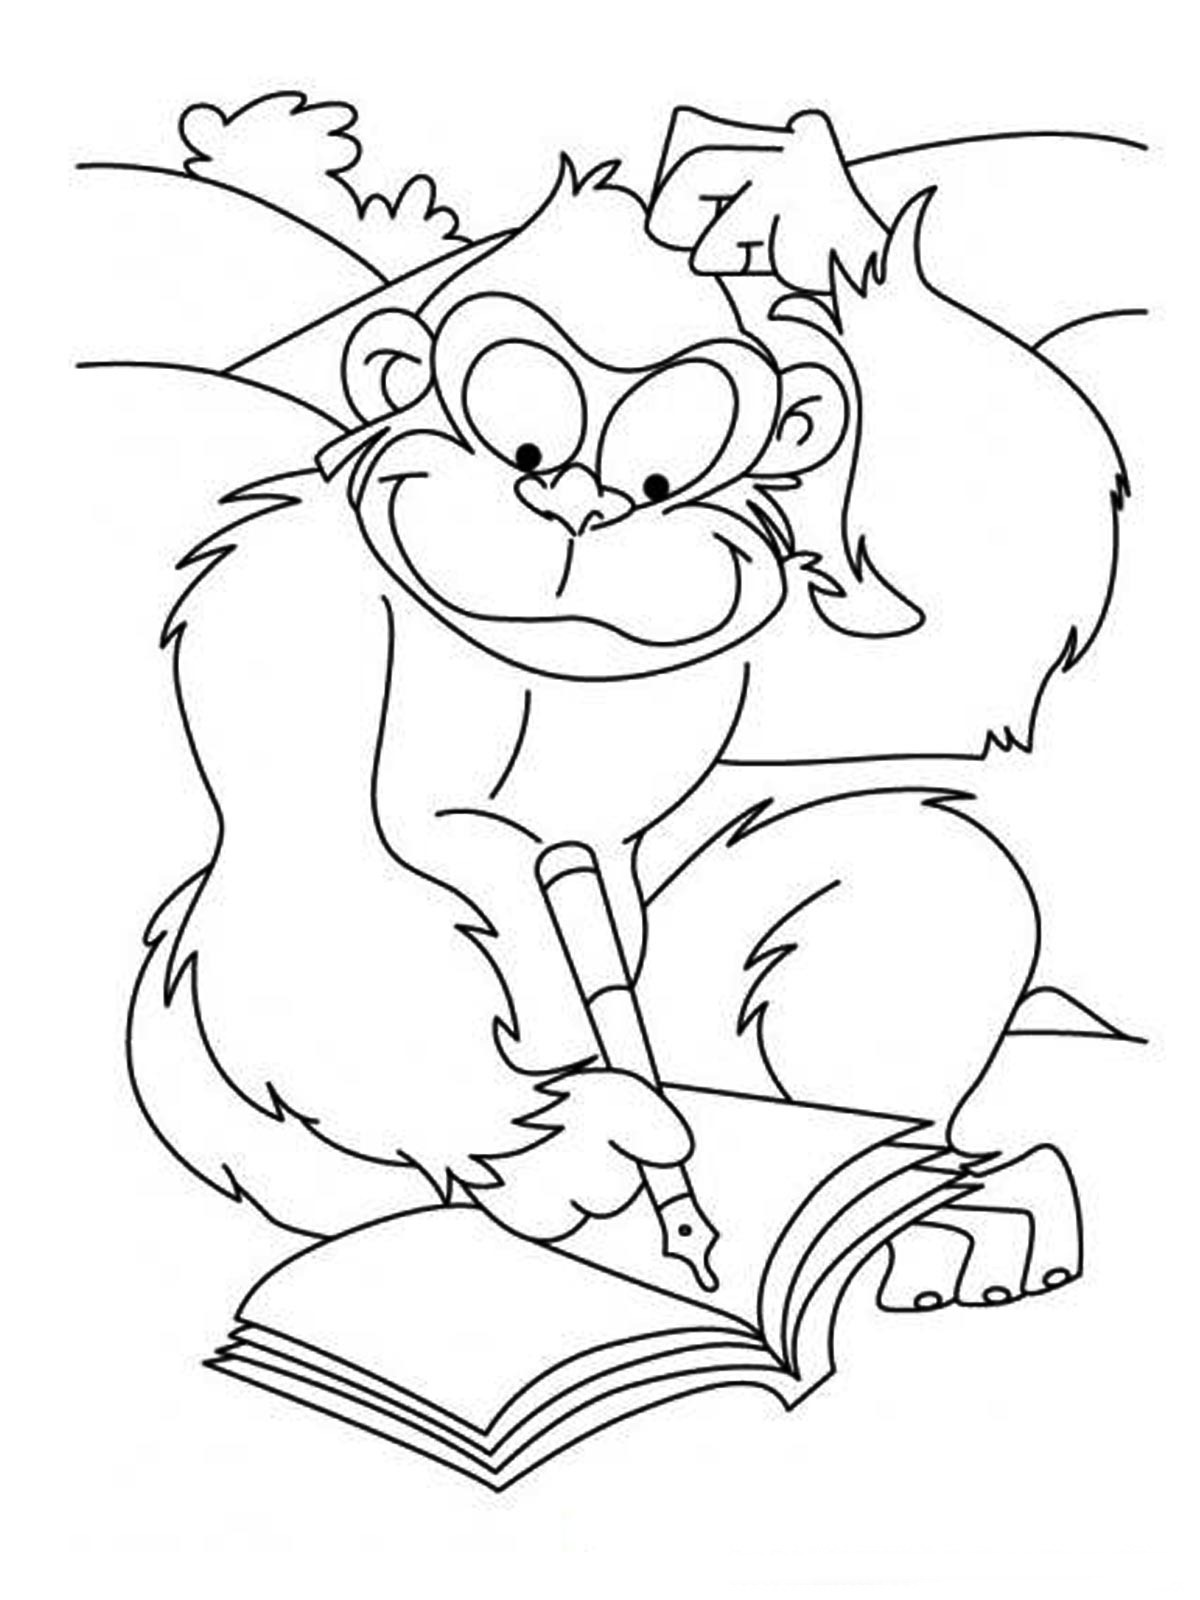 fun animal coloring pages apes coloring pages realistic realistic coloring pages